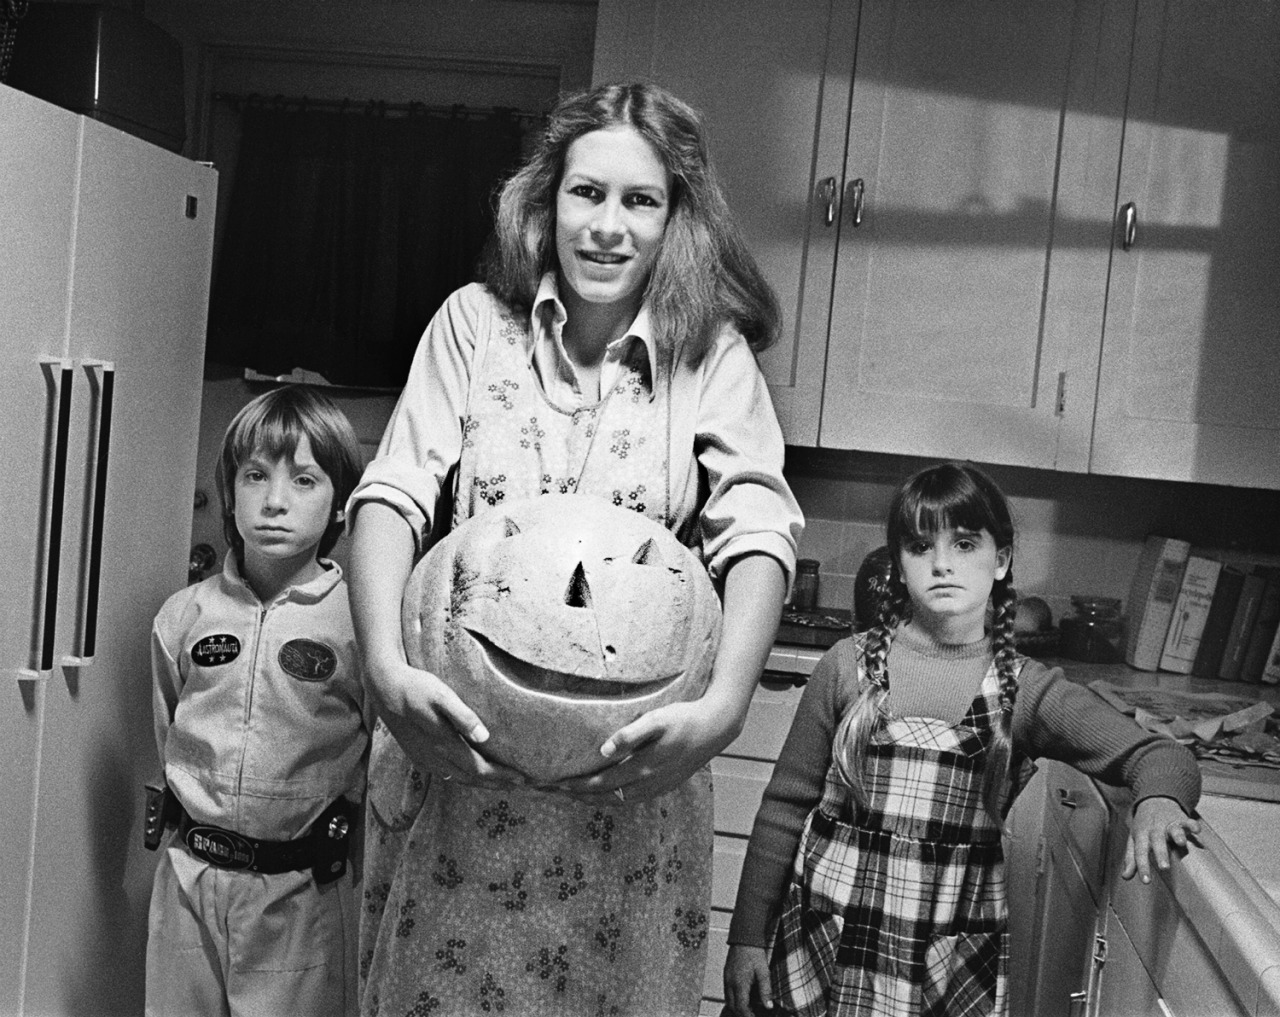 brian andrews jamie lee curtis and kyle richards on set of the movie halloween 1978